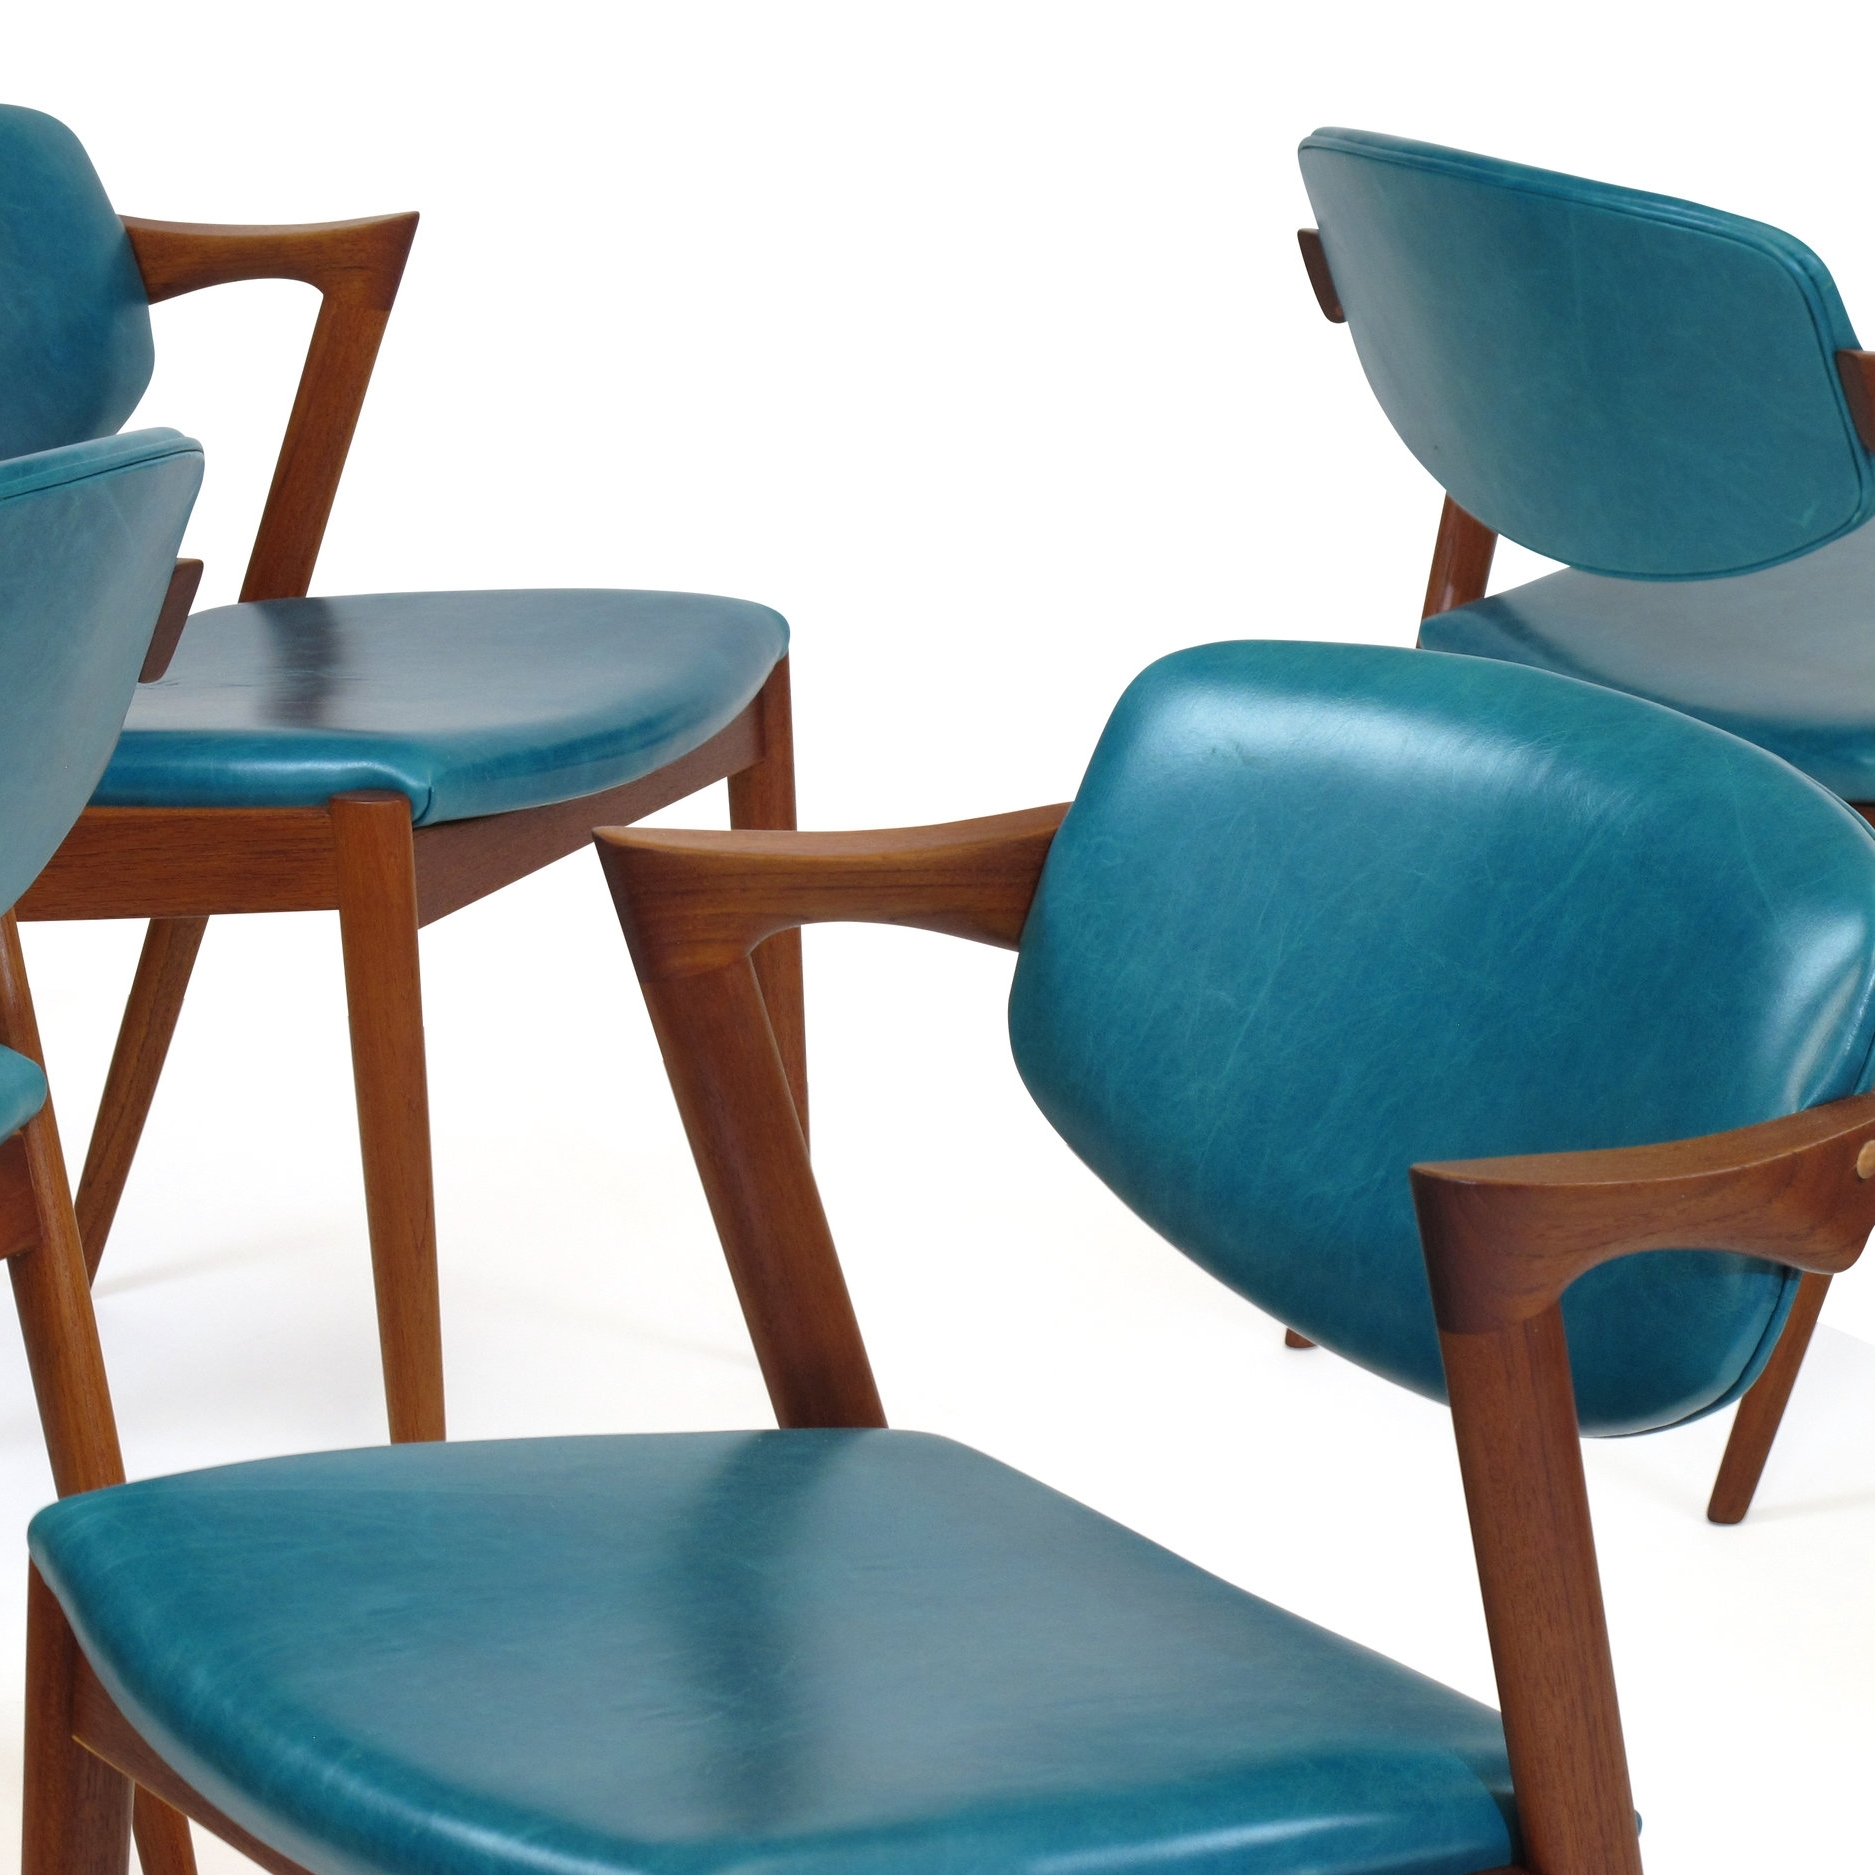 Kai Kristiansen Z Dining Chairs in Aqua Blue Leather 24 Available